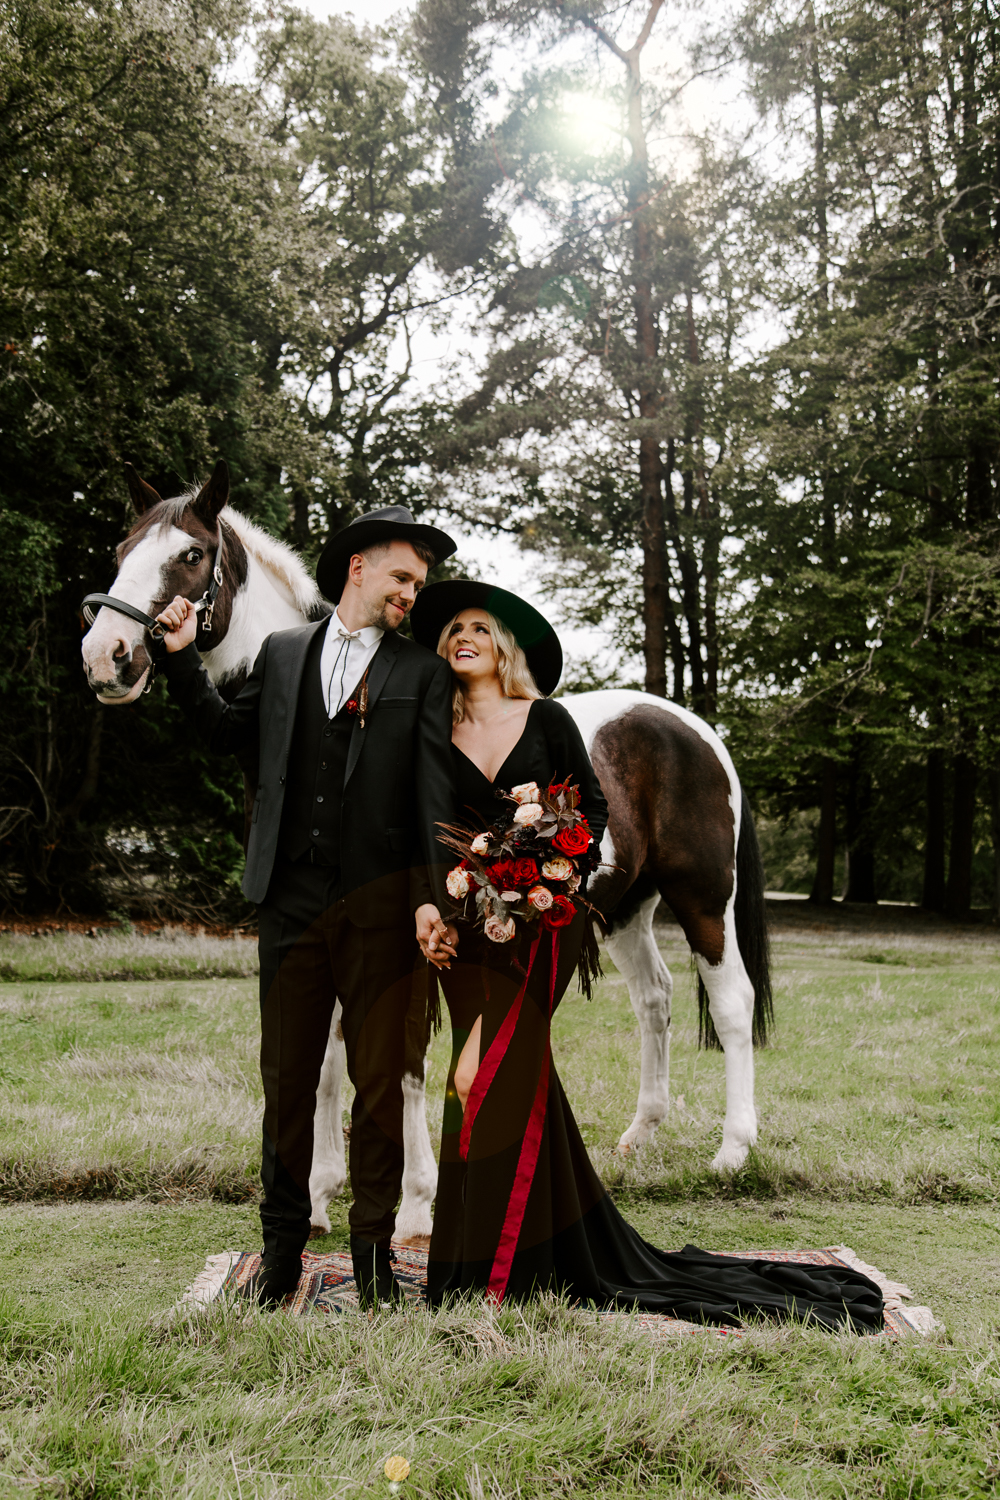 Bride and groom wearing black with horse